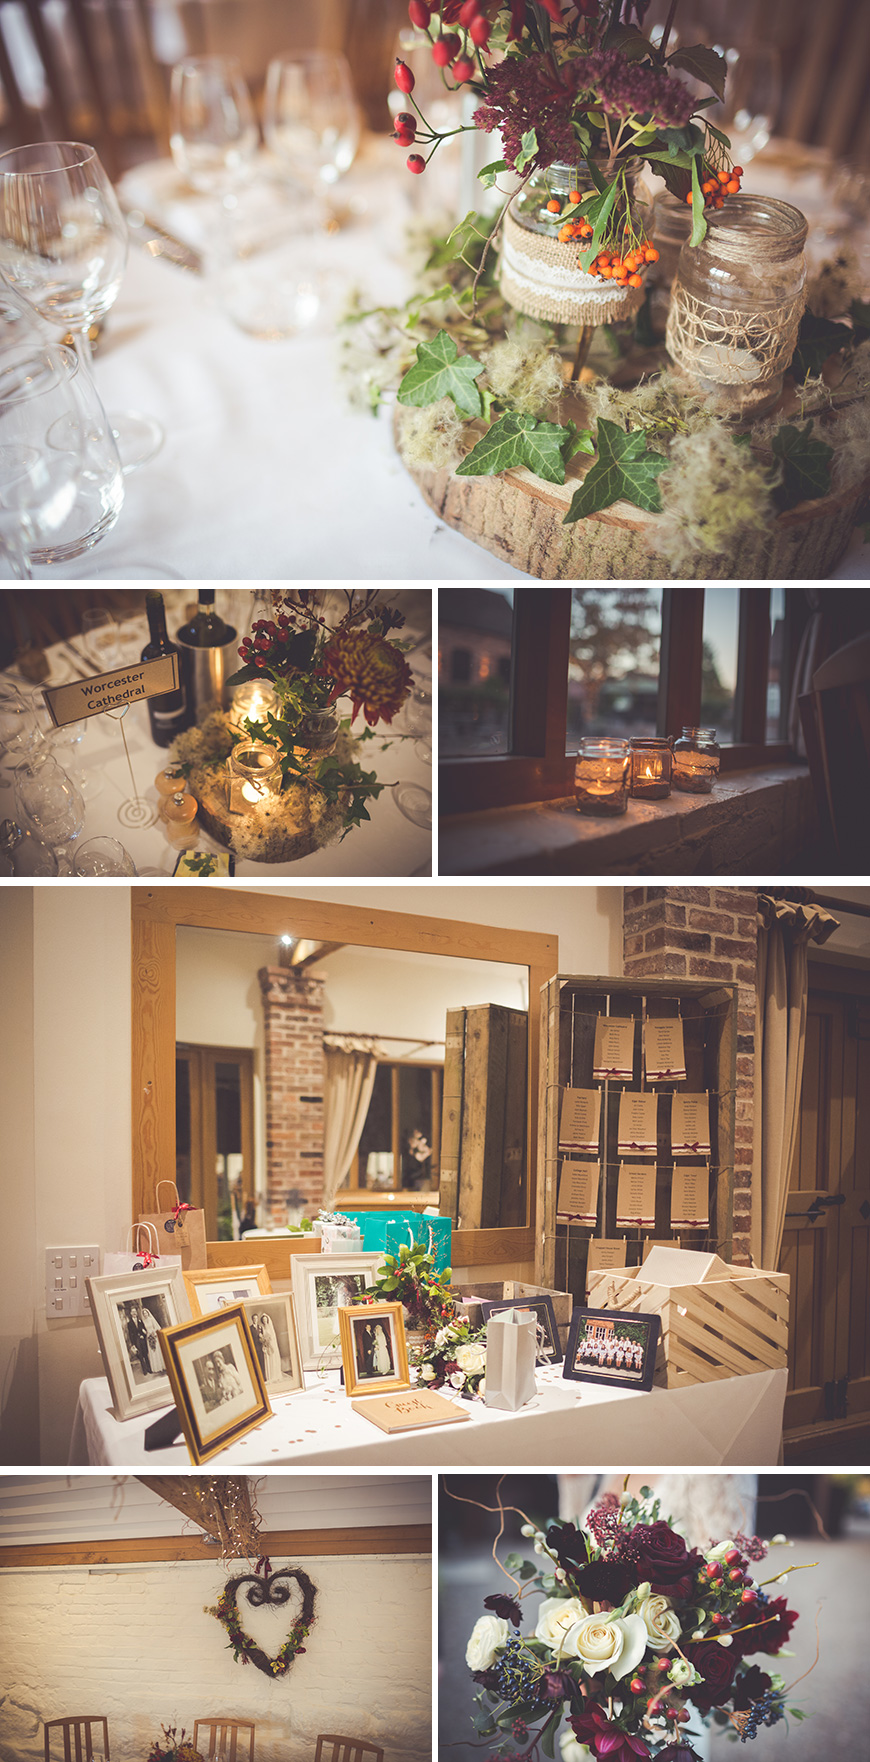 Real Wedding - Beth and Joe's Wintry Rustic Wedding At Curradine Barns | CHWV